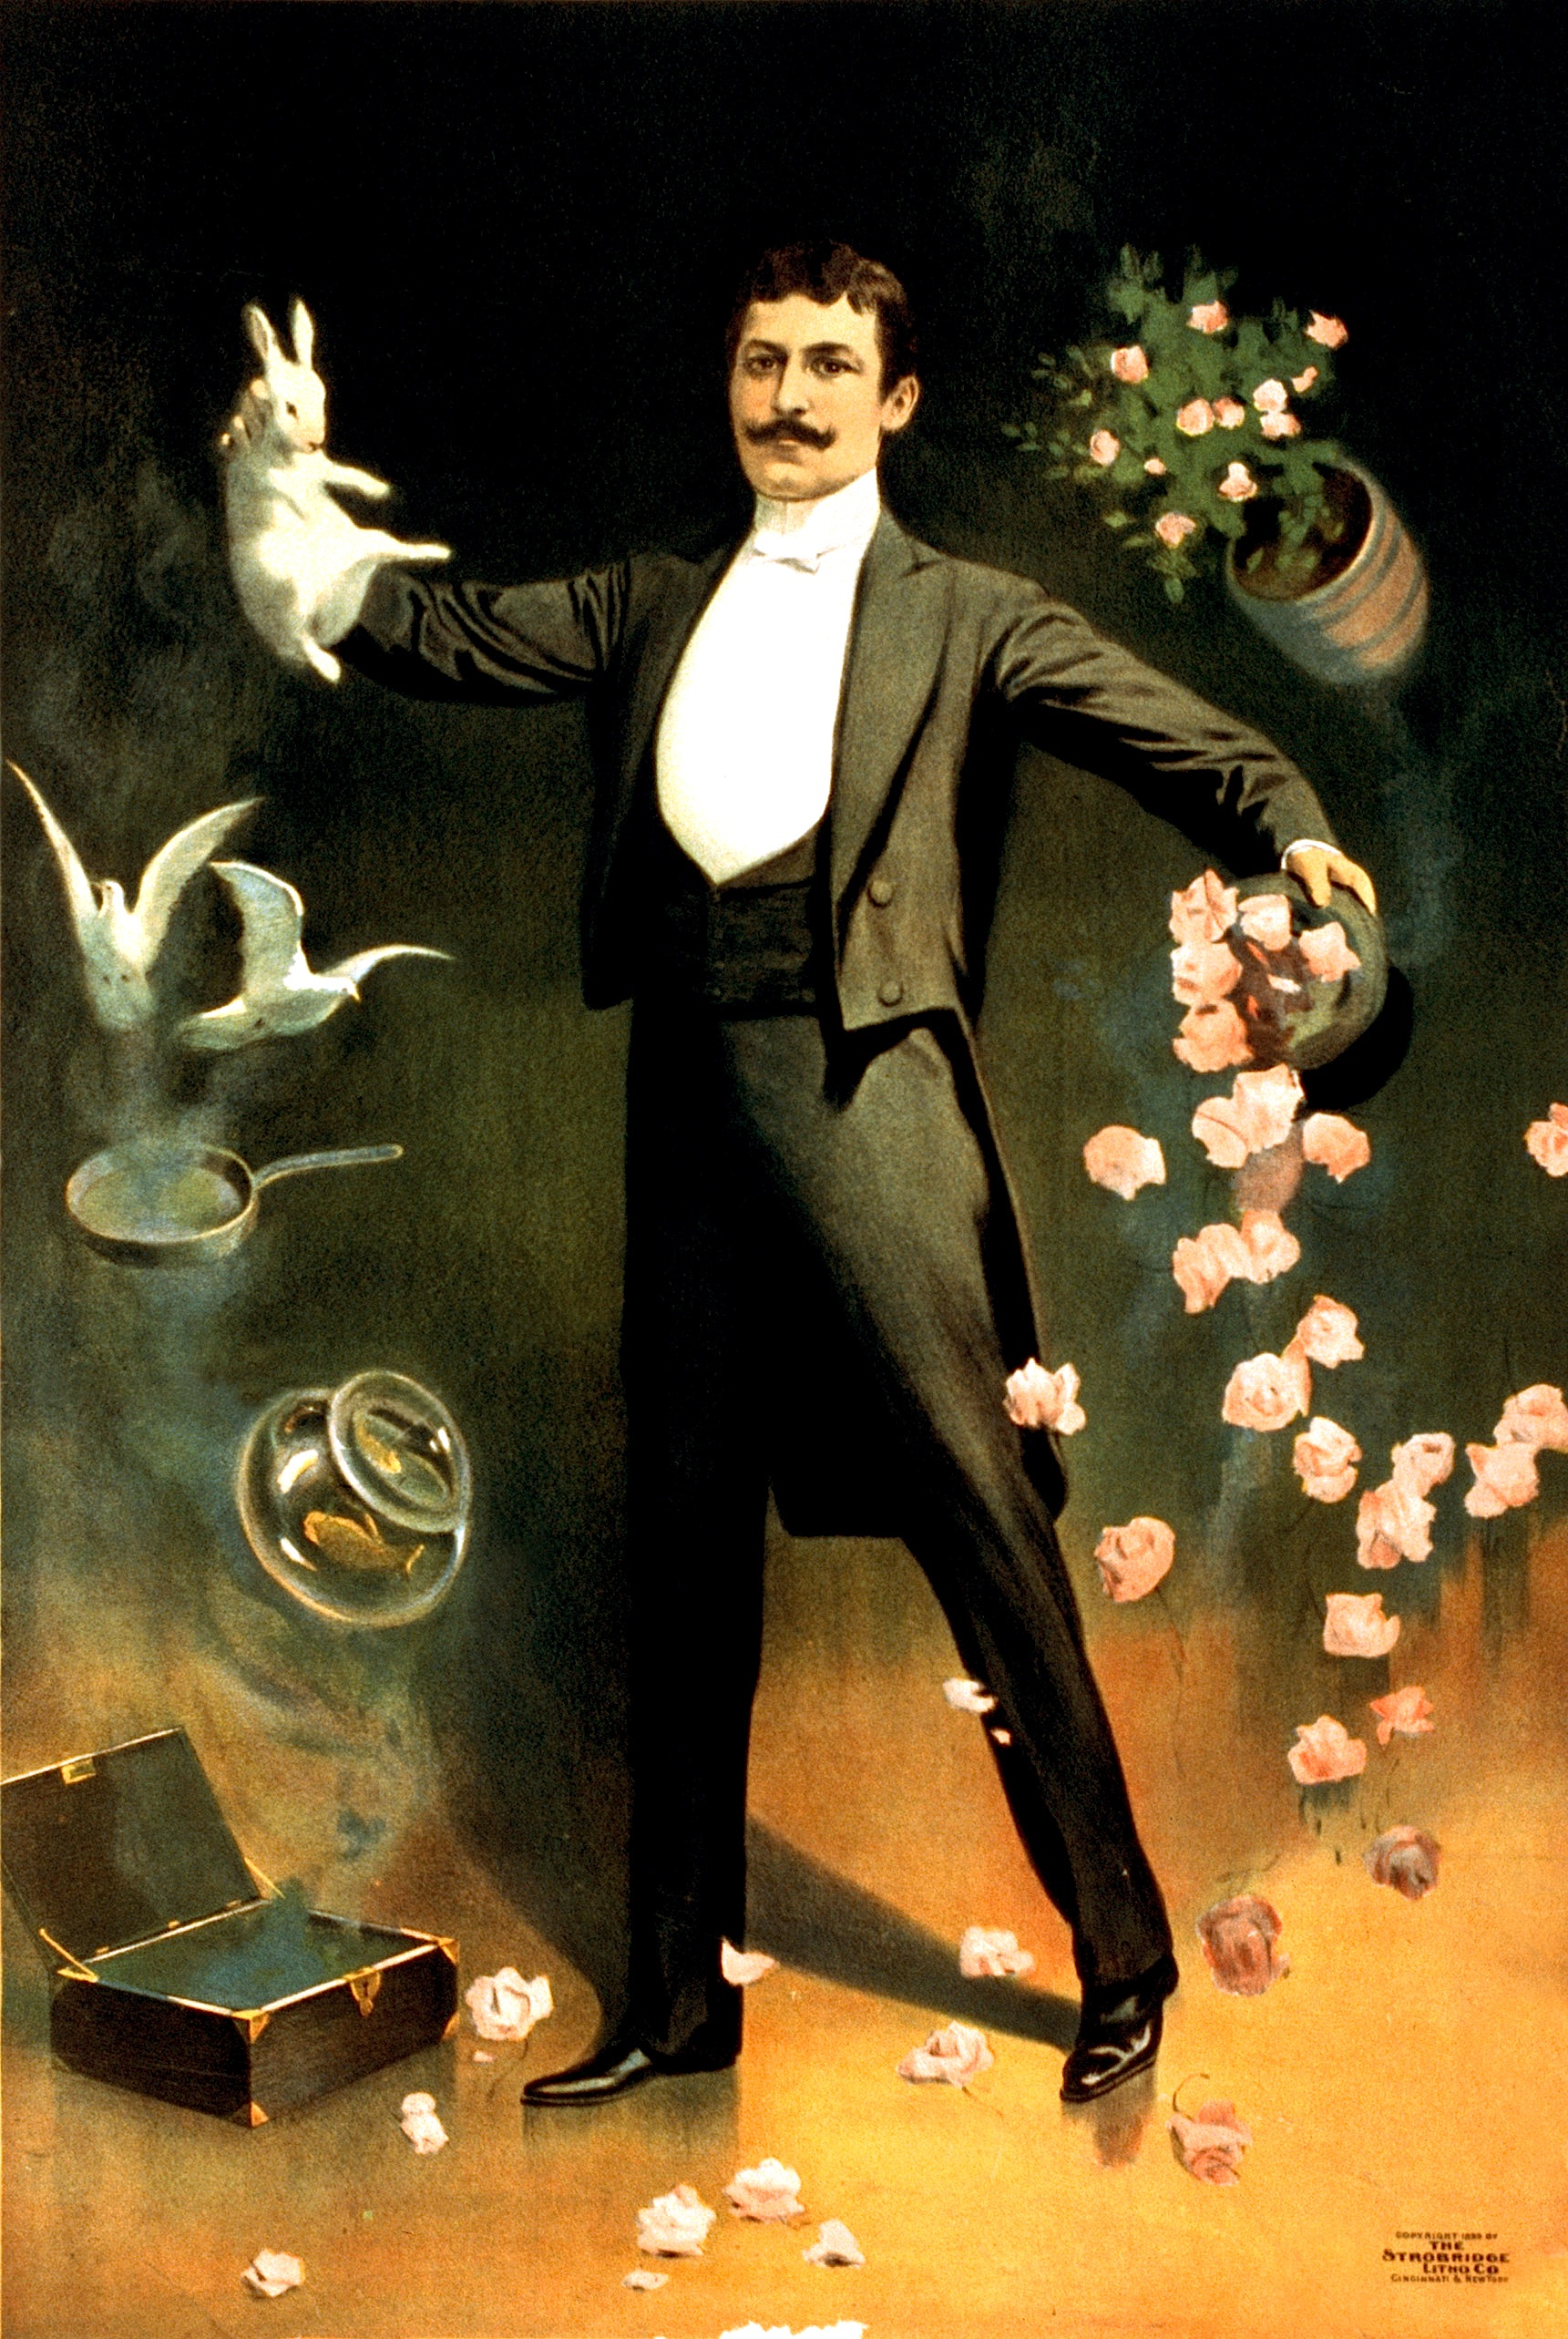 Zan Zig, magic, magician, white rabbit, hat, 1899